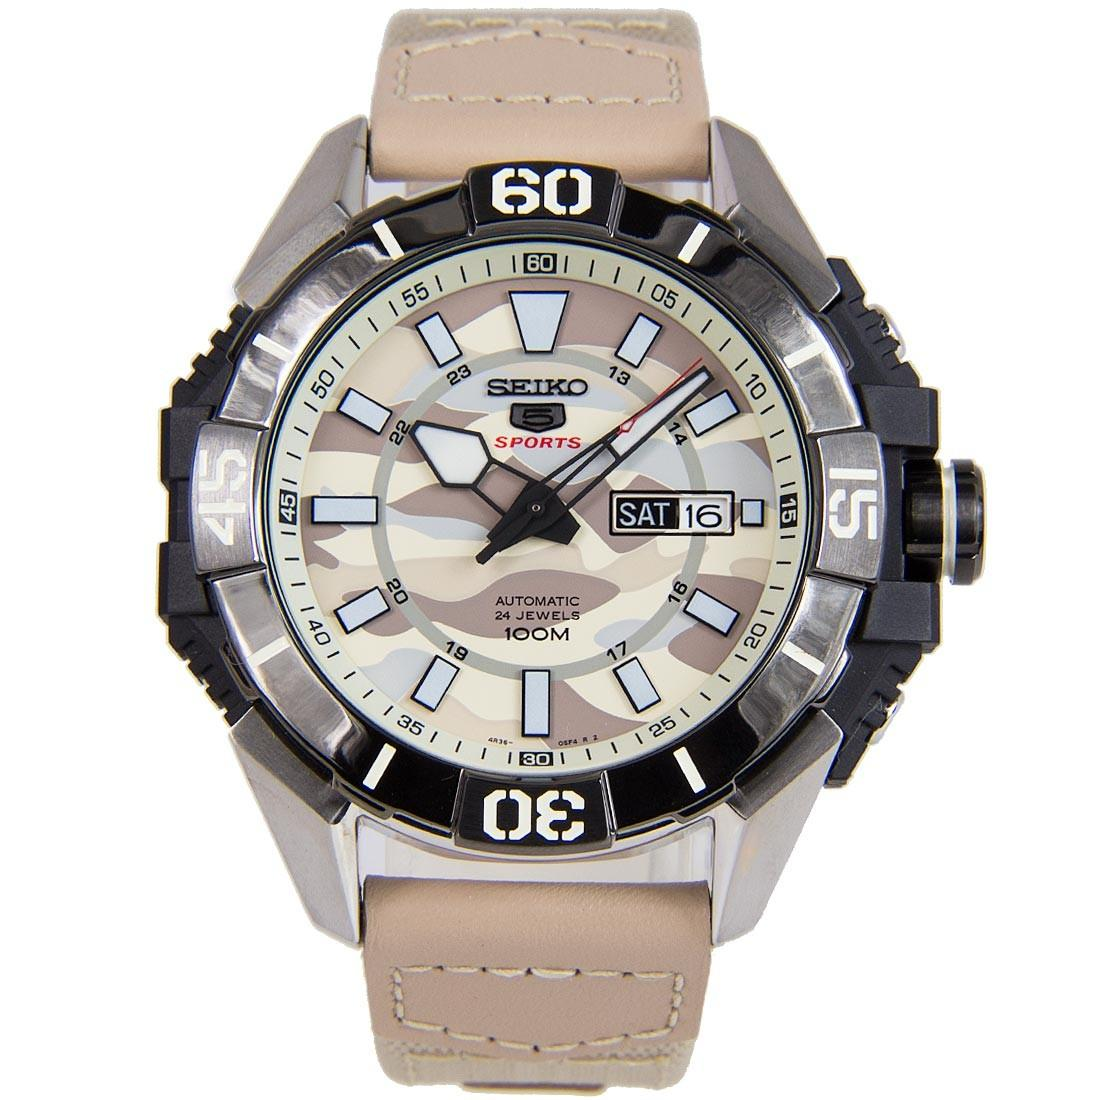 Seiko 5 SRPA01K1 SRPA01K SRPA01 Sports Automatic Camouflage Dial  Leather Nylon 100M Men's Watch